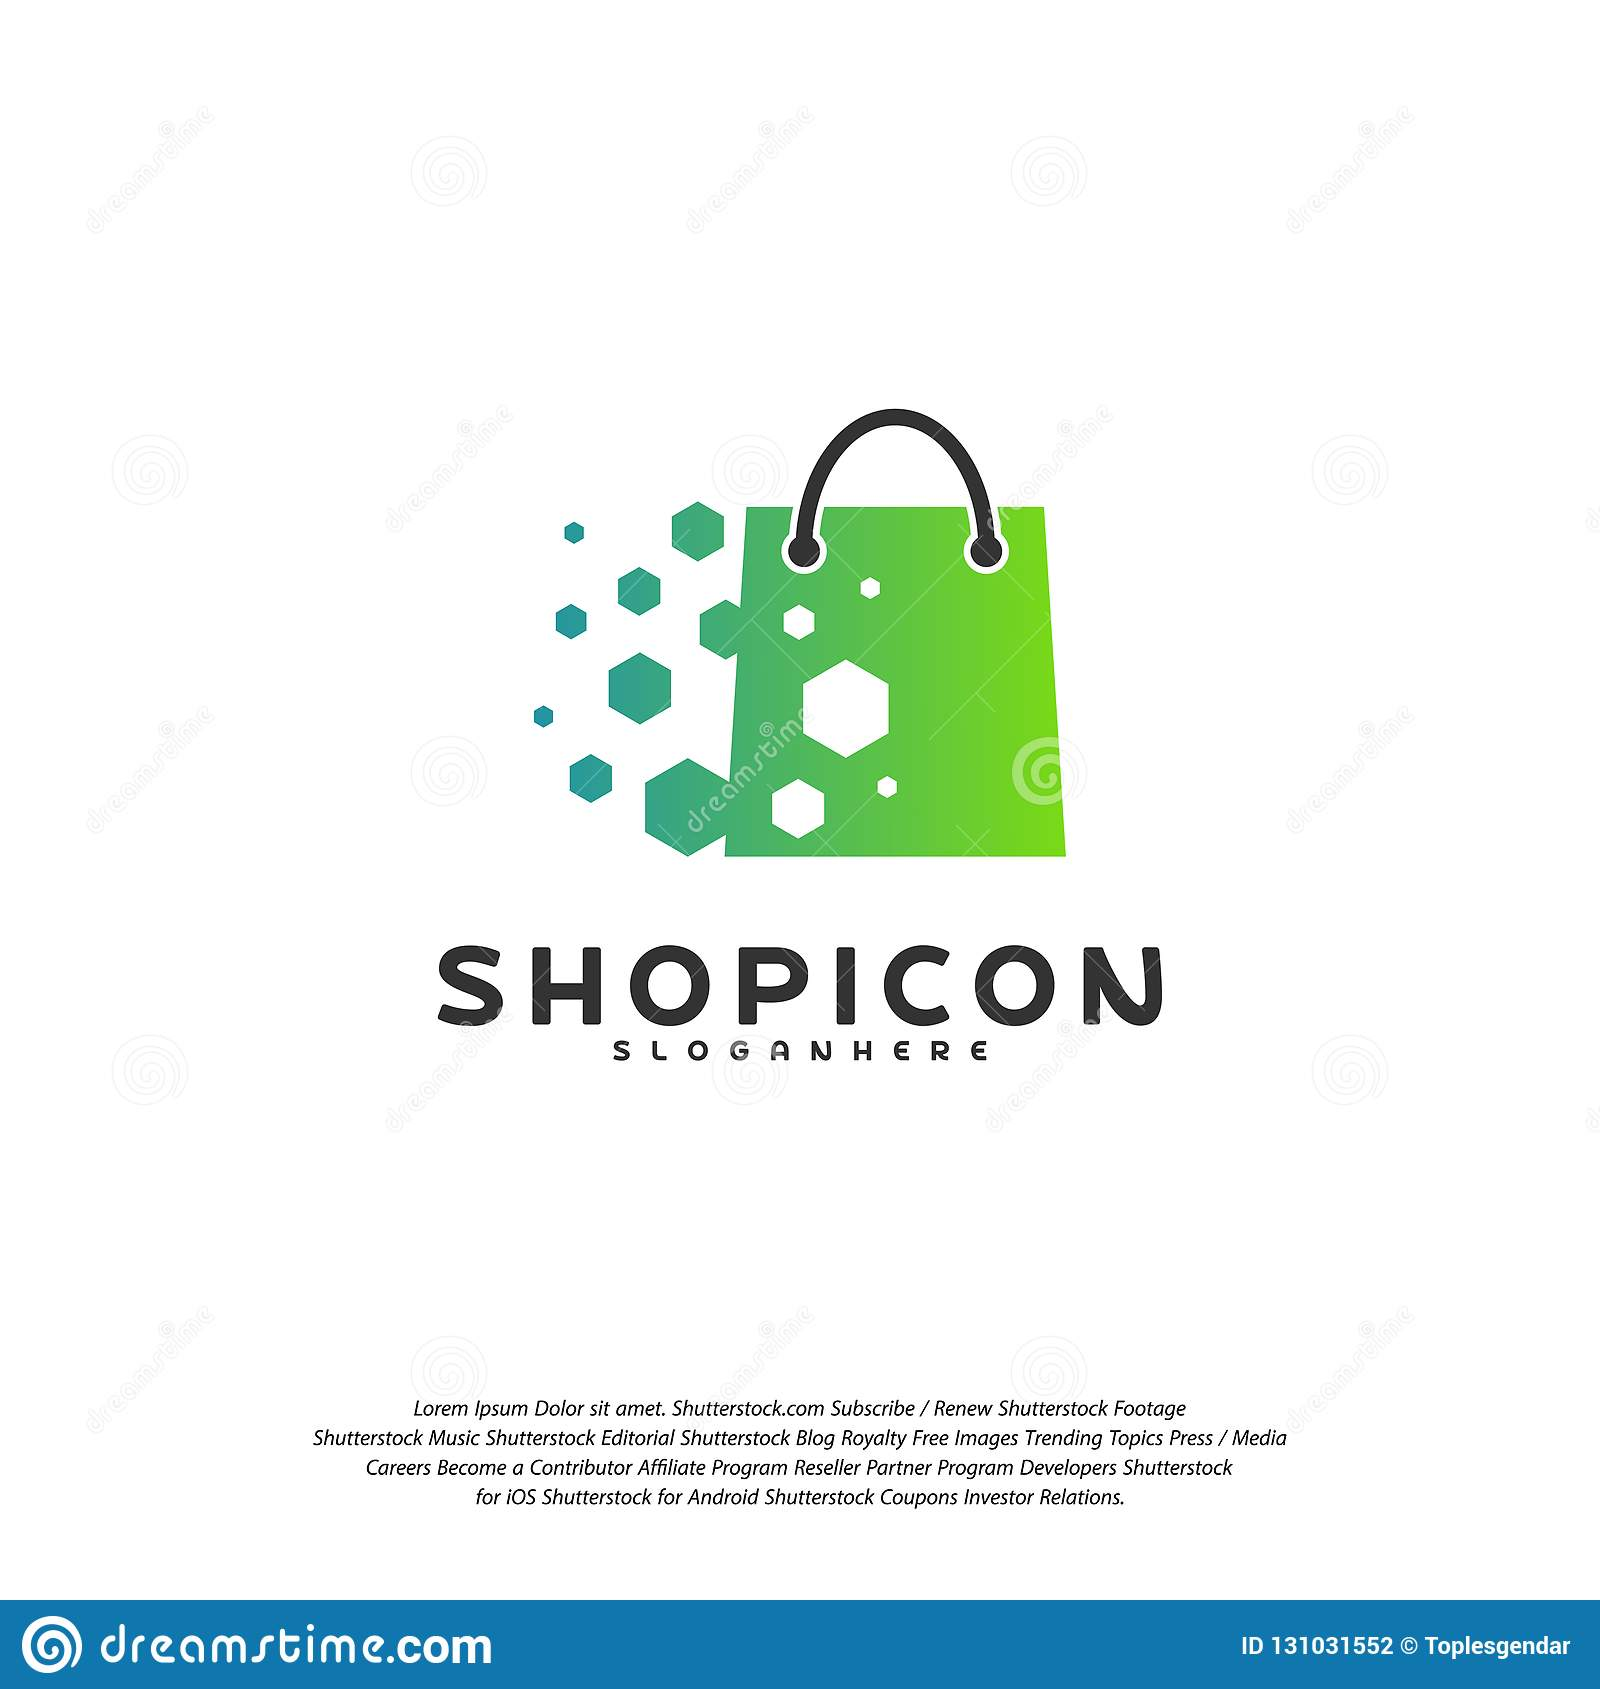 Marché en ligne Logo Template Design Vector, magasin Logo Design Element de magasin de magasin de pixel